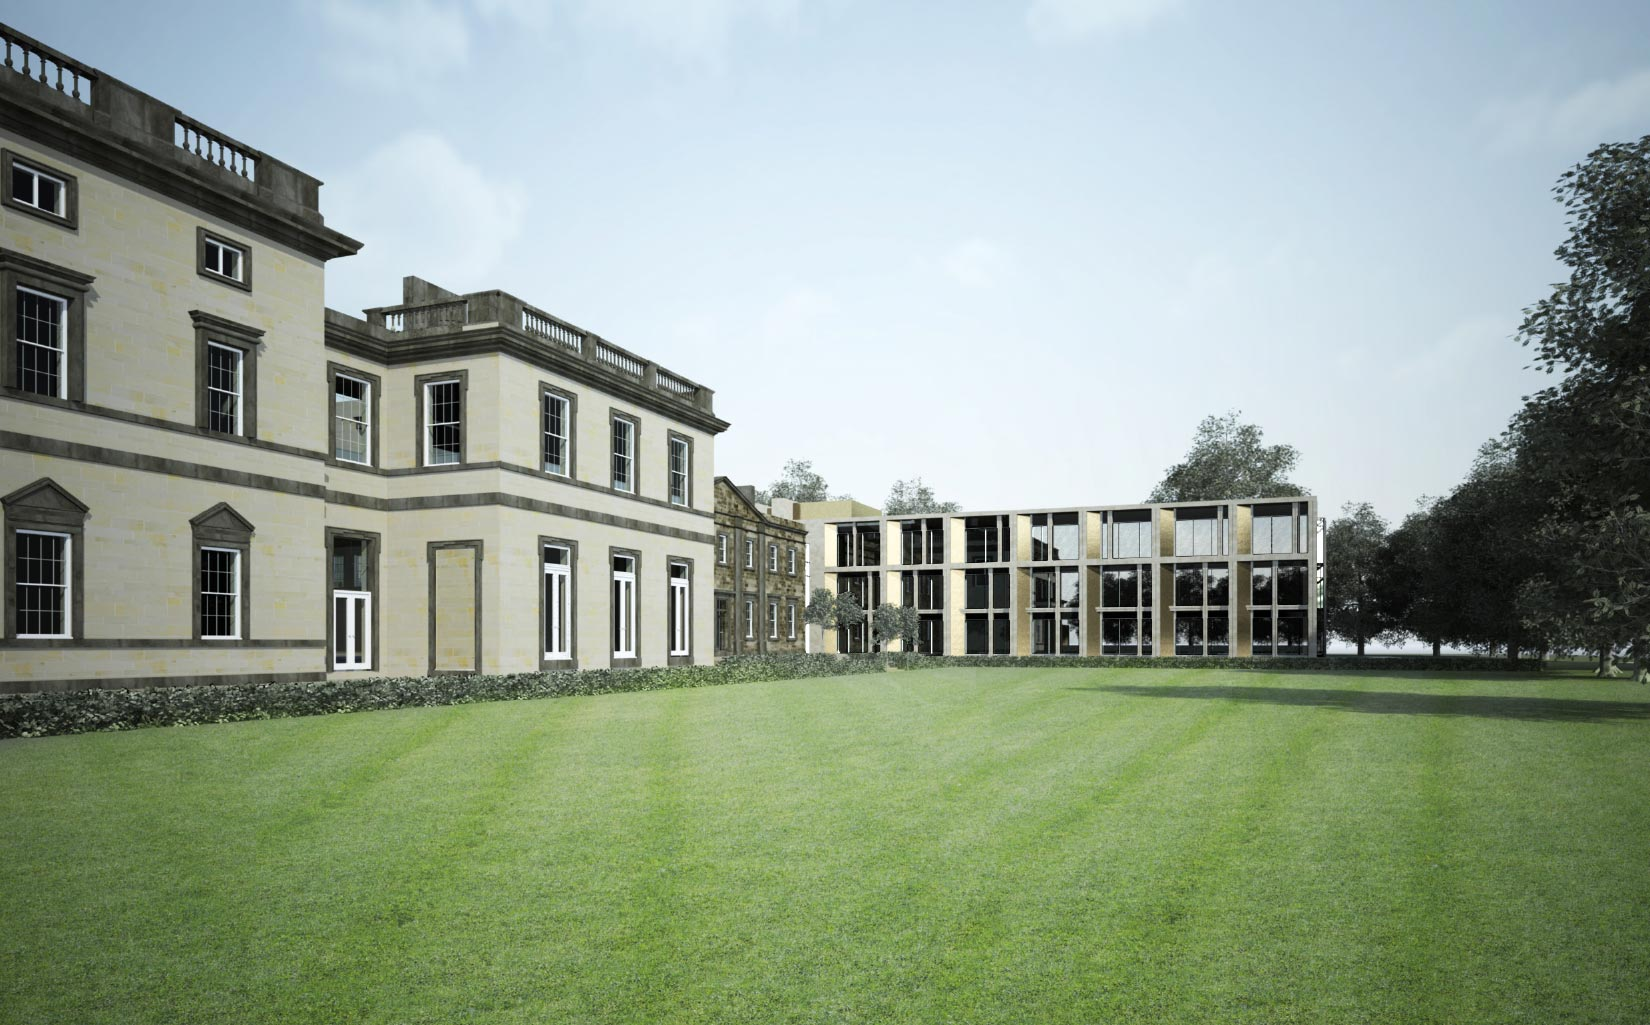 Bretton Hall Hotel, Wakefield, View from the gardens